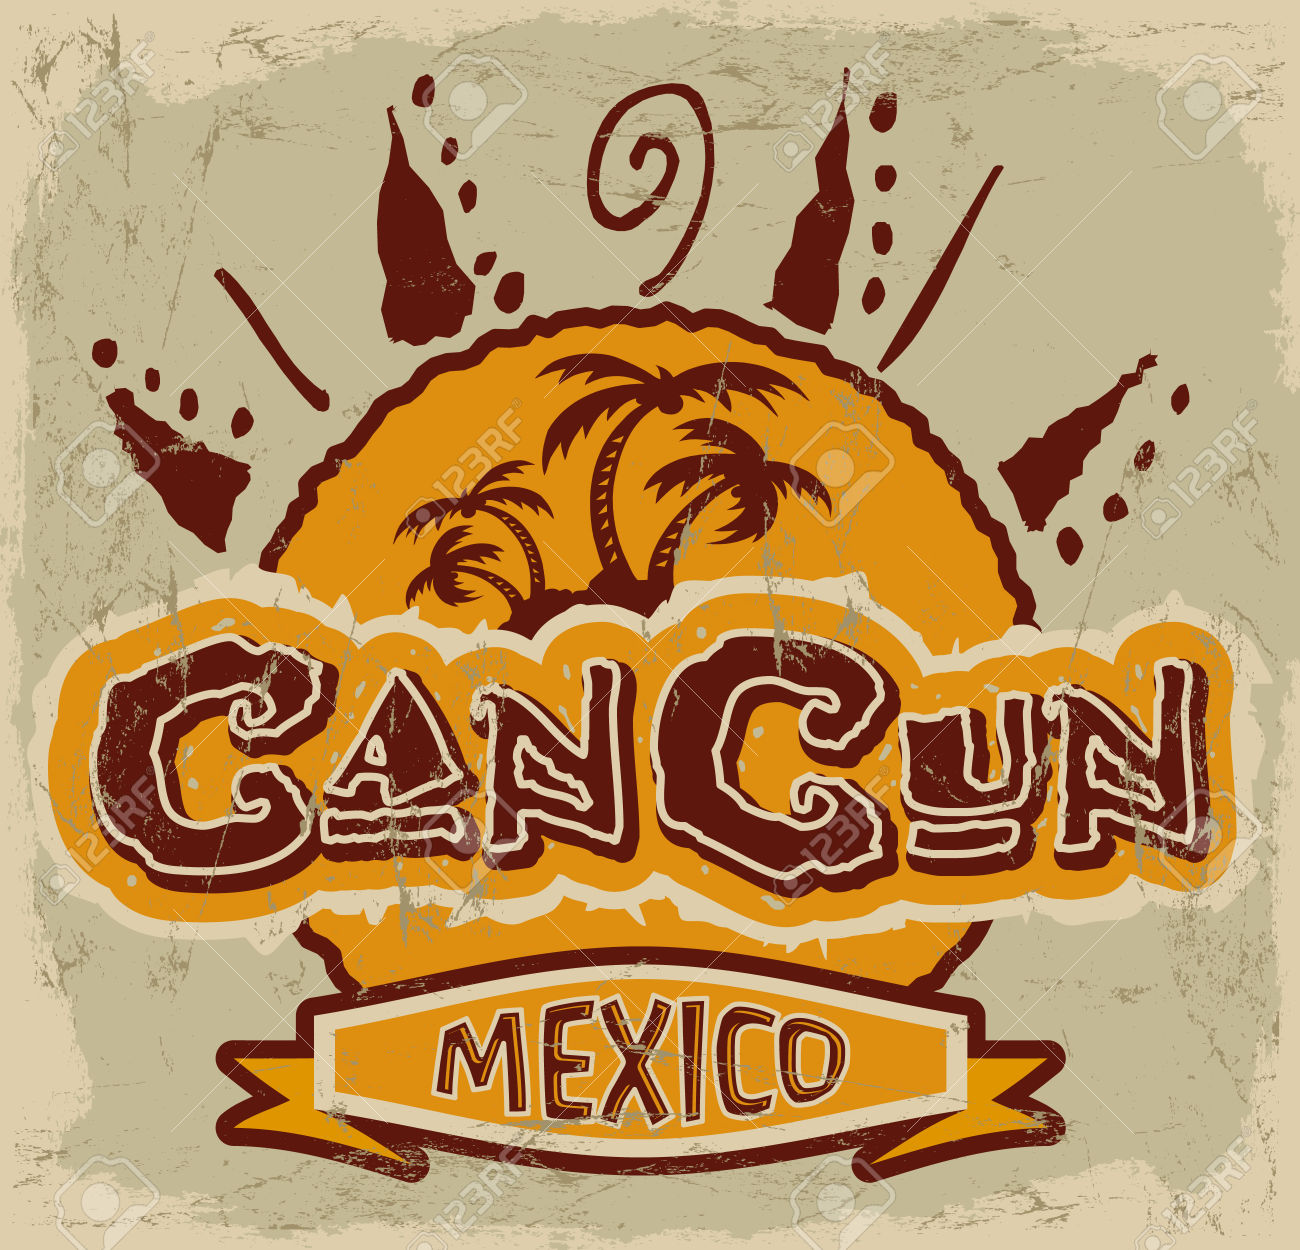 336 Cancun Stock Illustrations, Cliparts And Royalty Free Cancun.